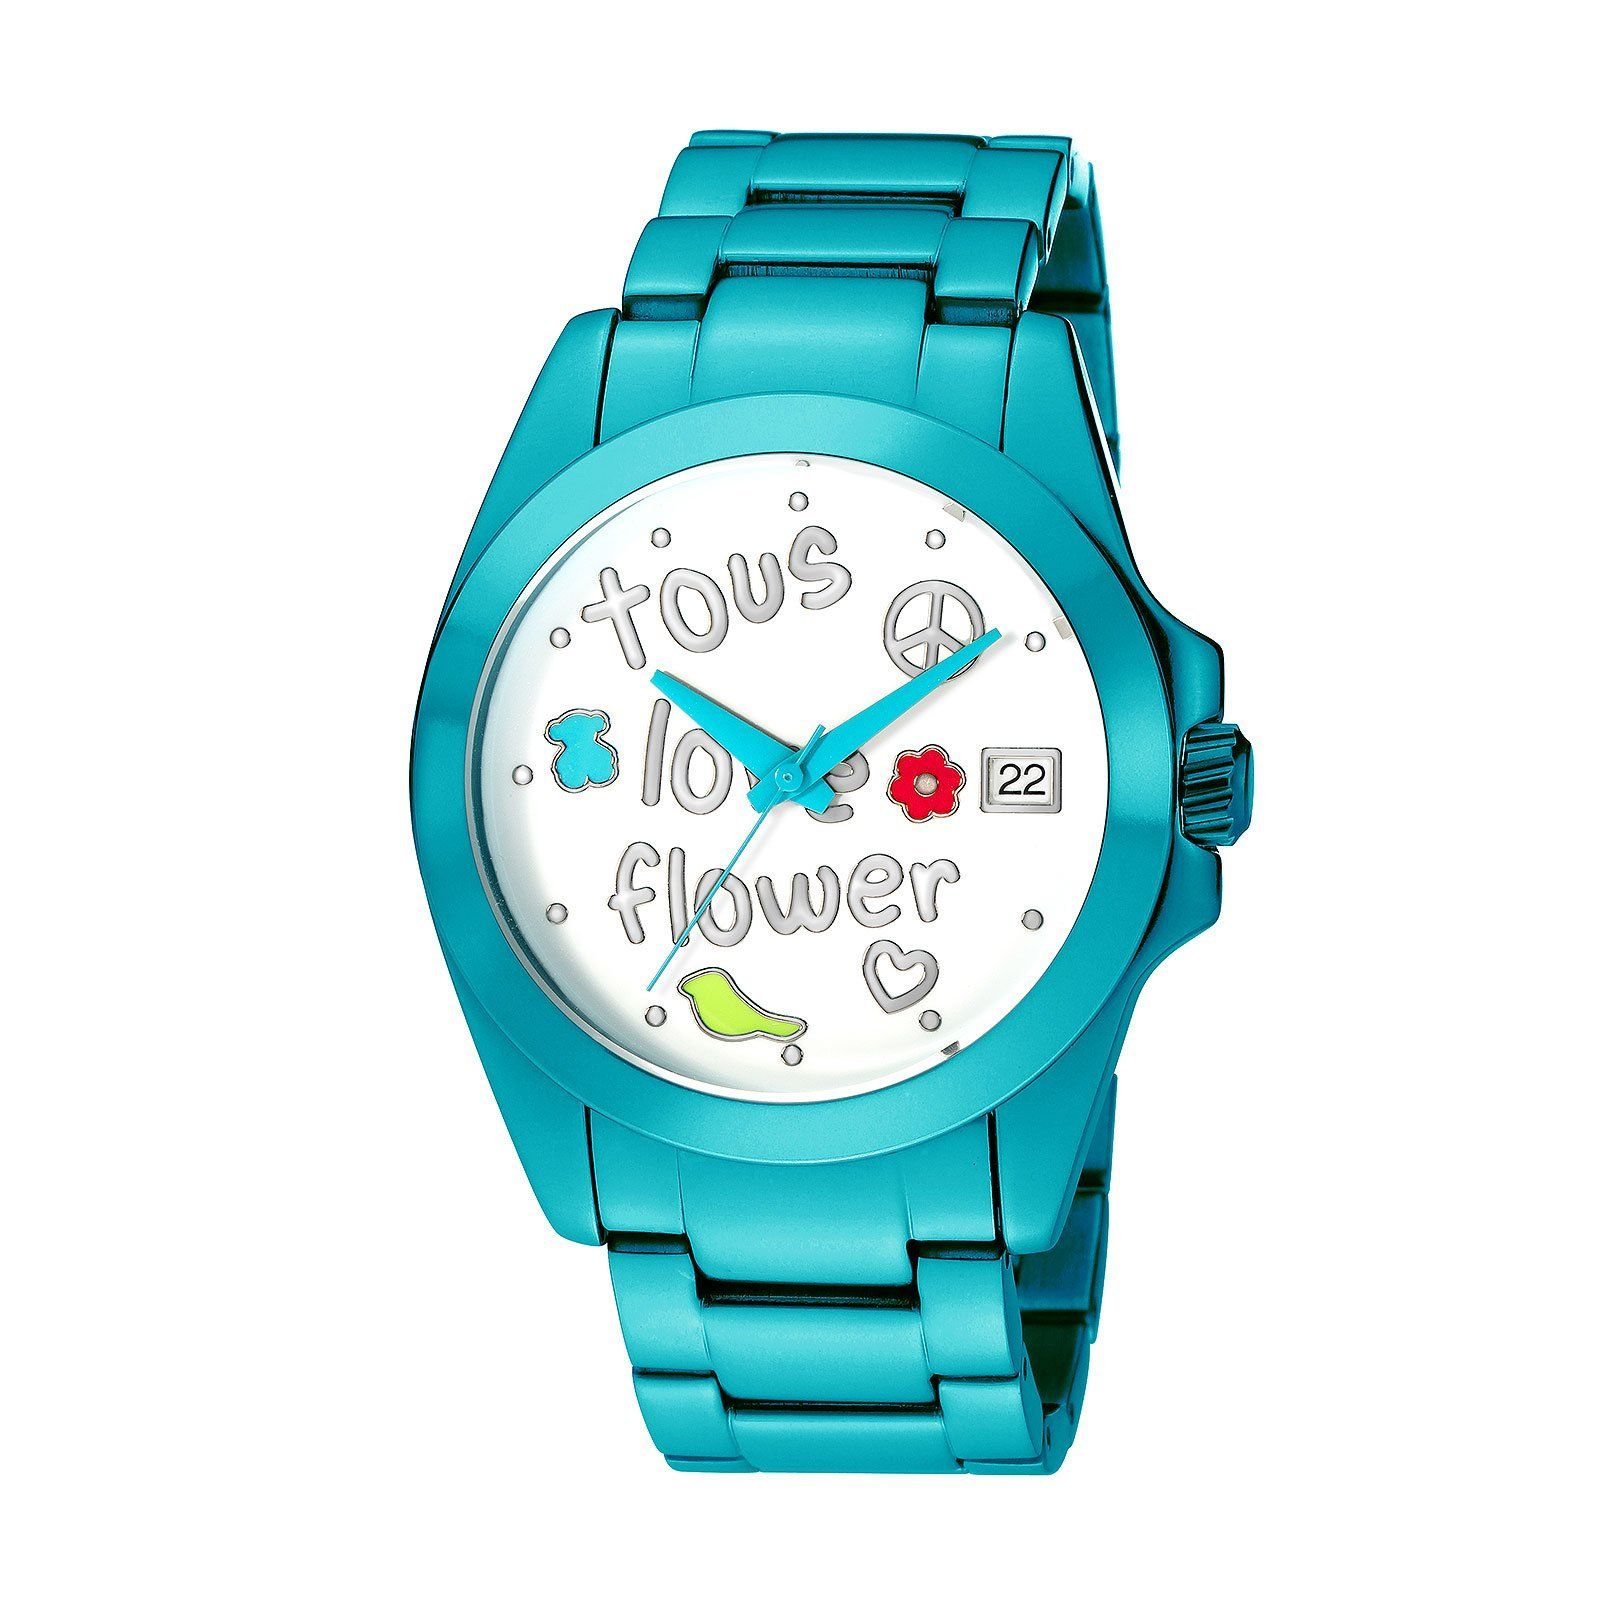 TOUS Drive Aluminio watch | Relojes! Watches! | Watches ...